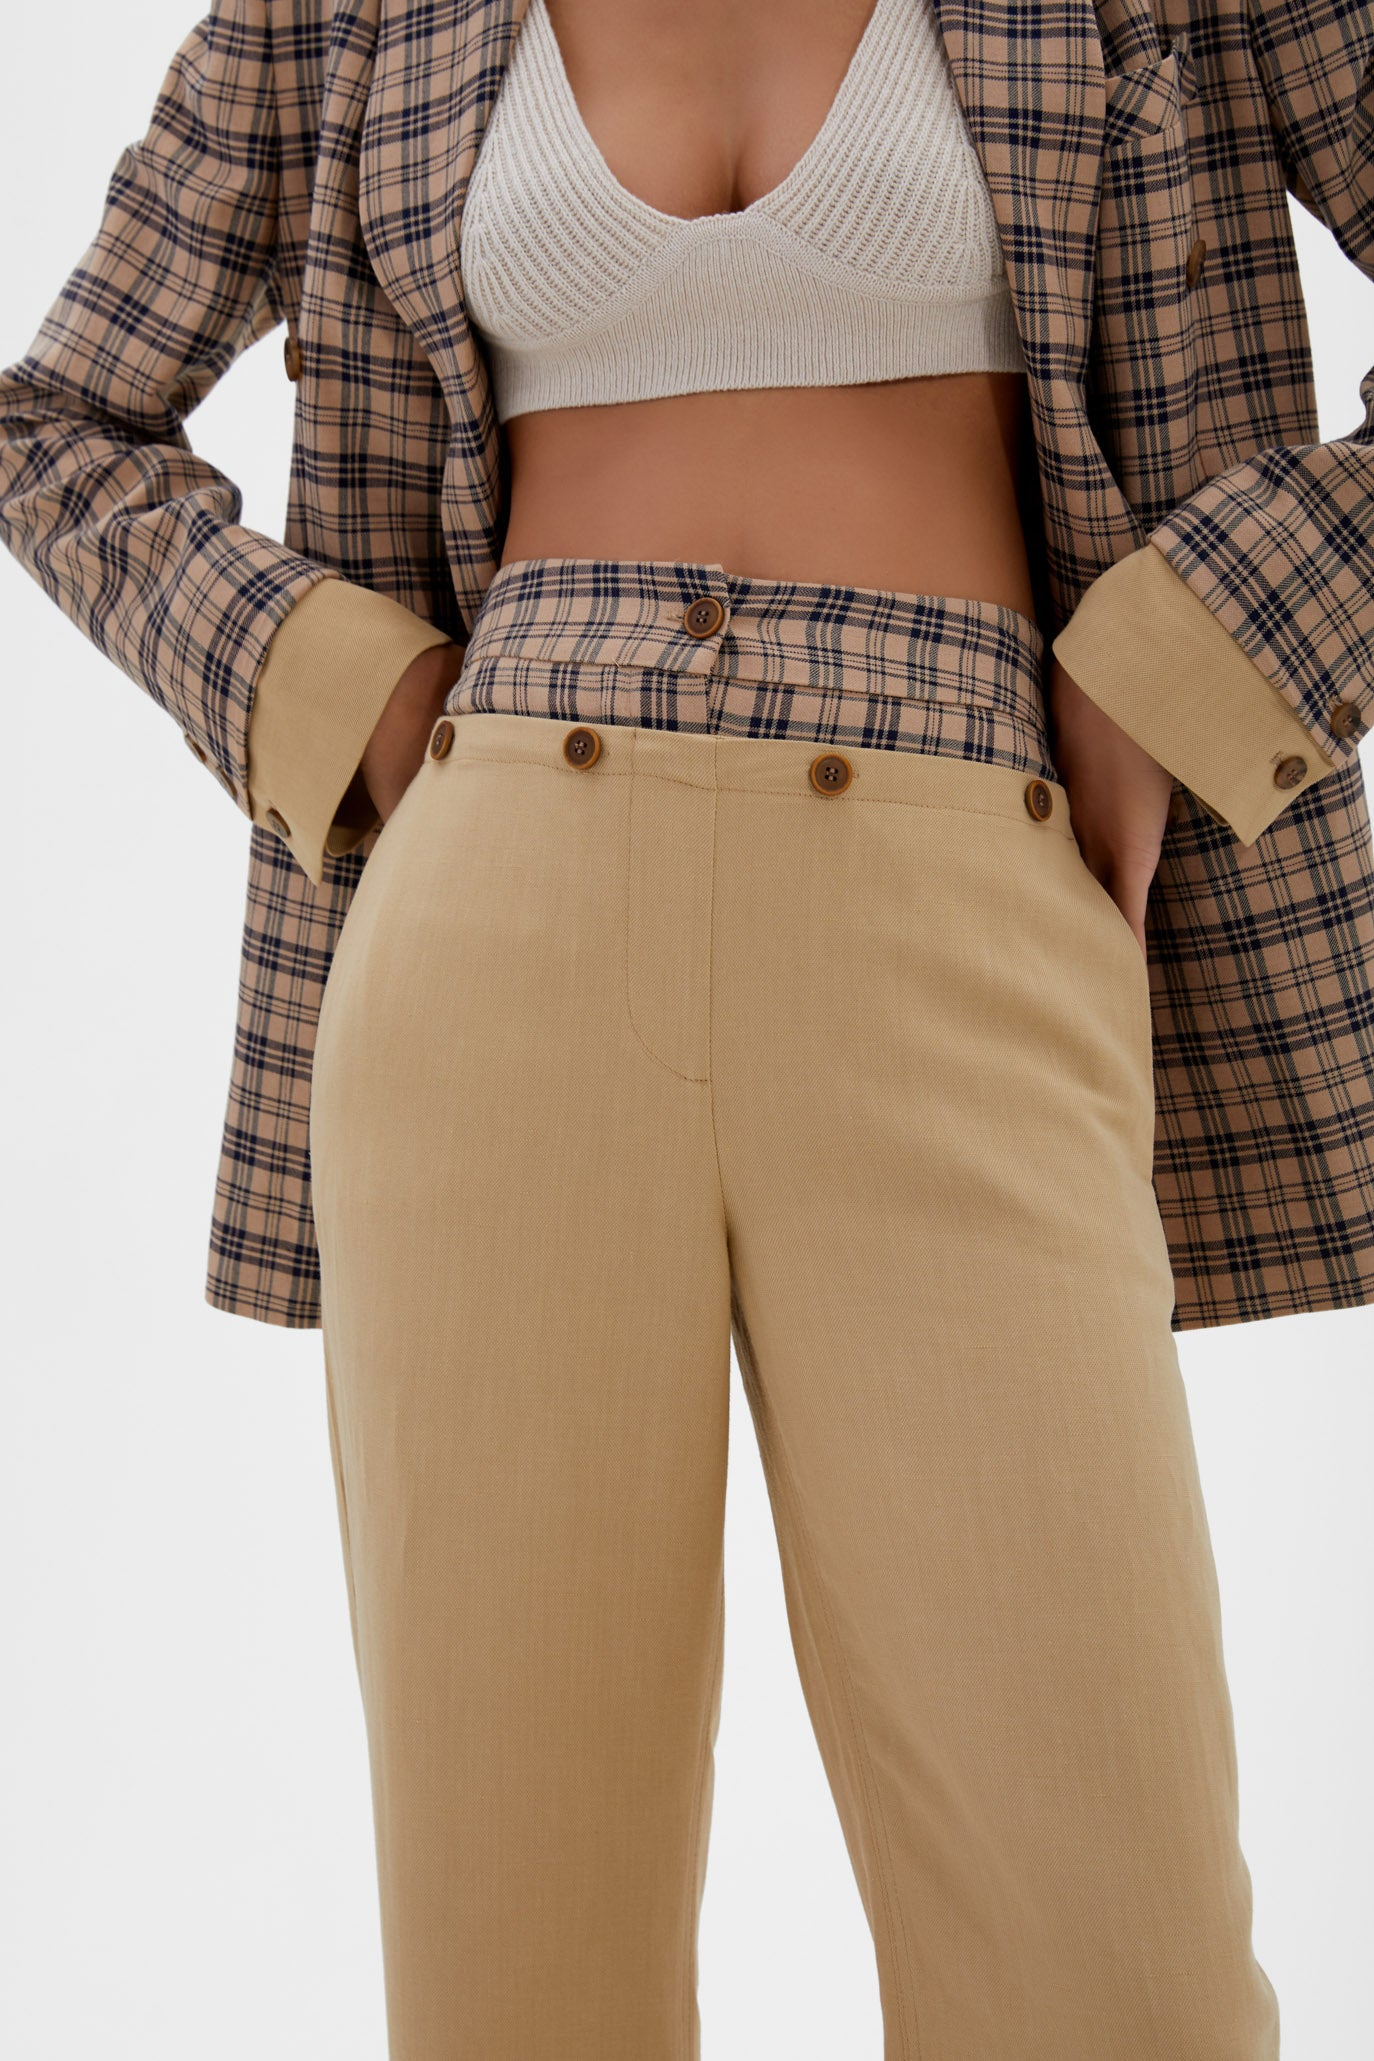 Janella Double Waisted Pant